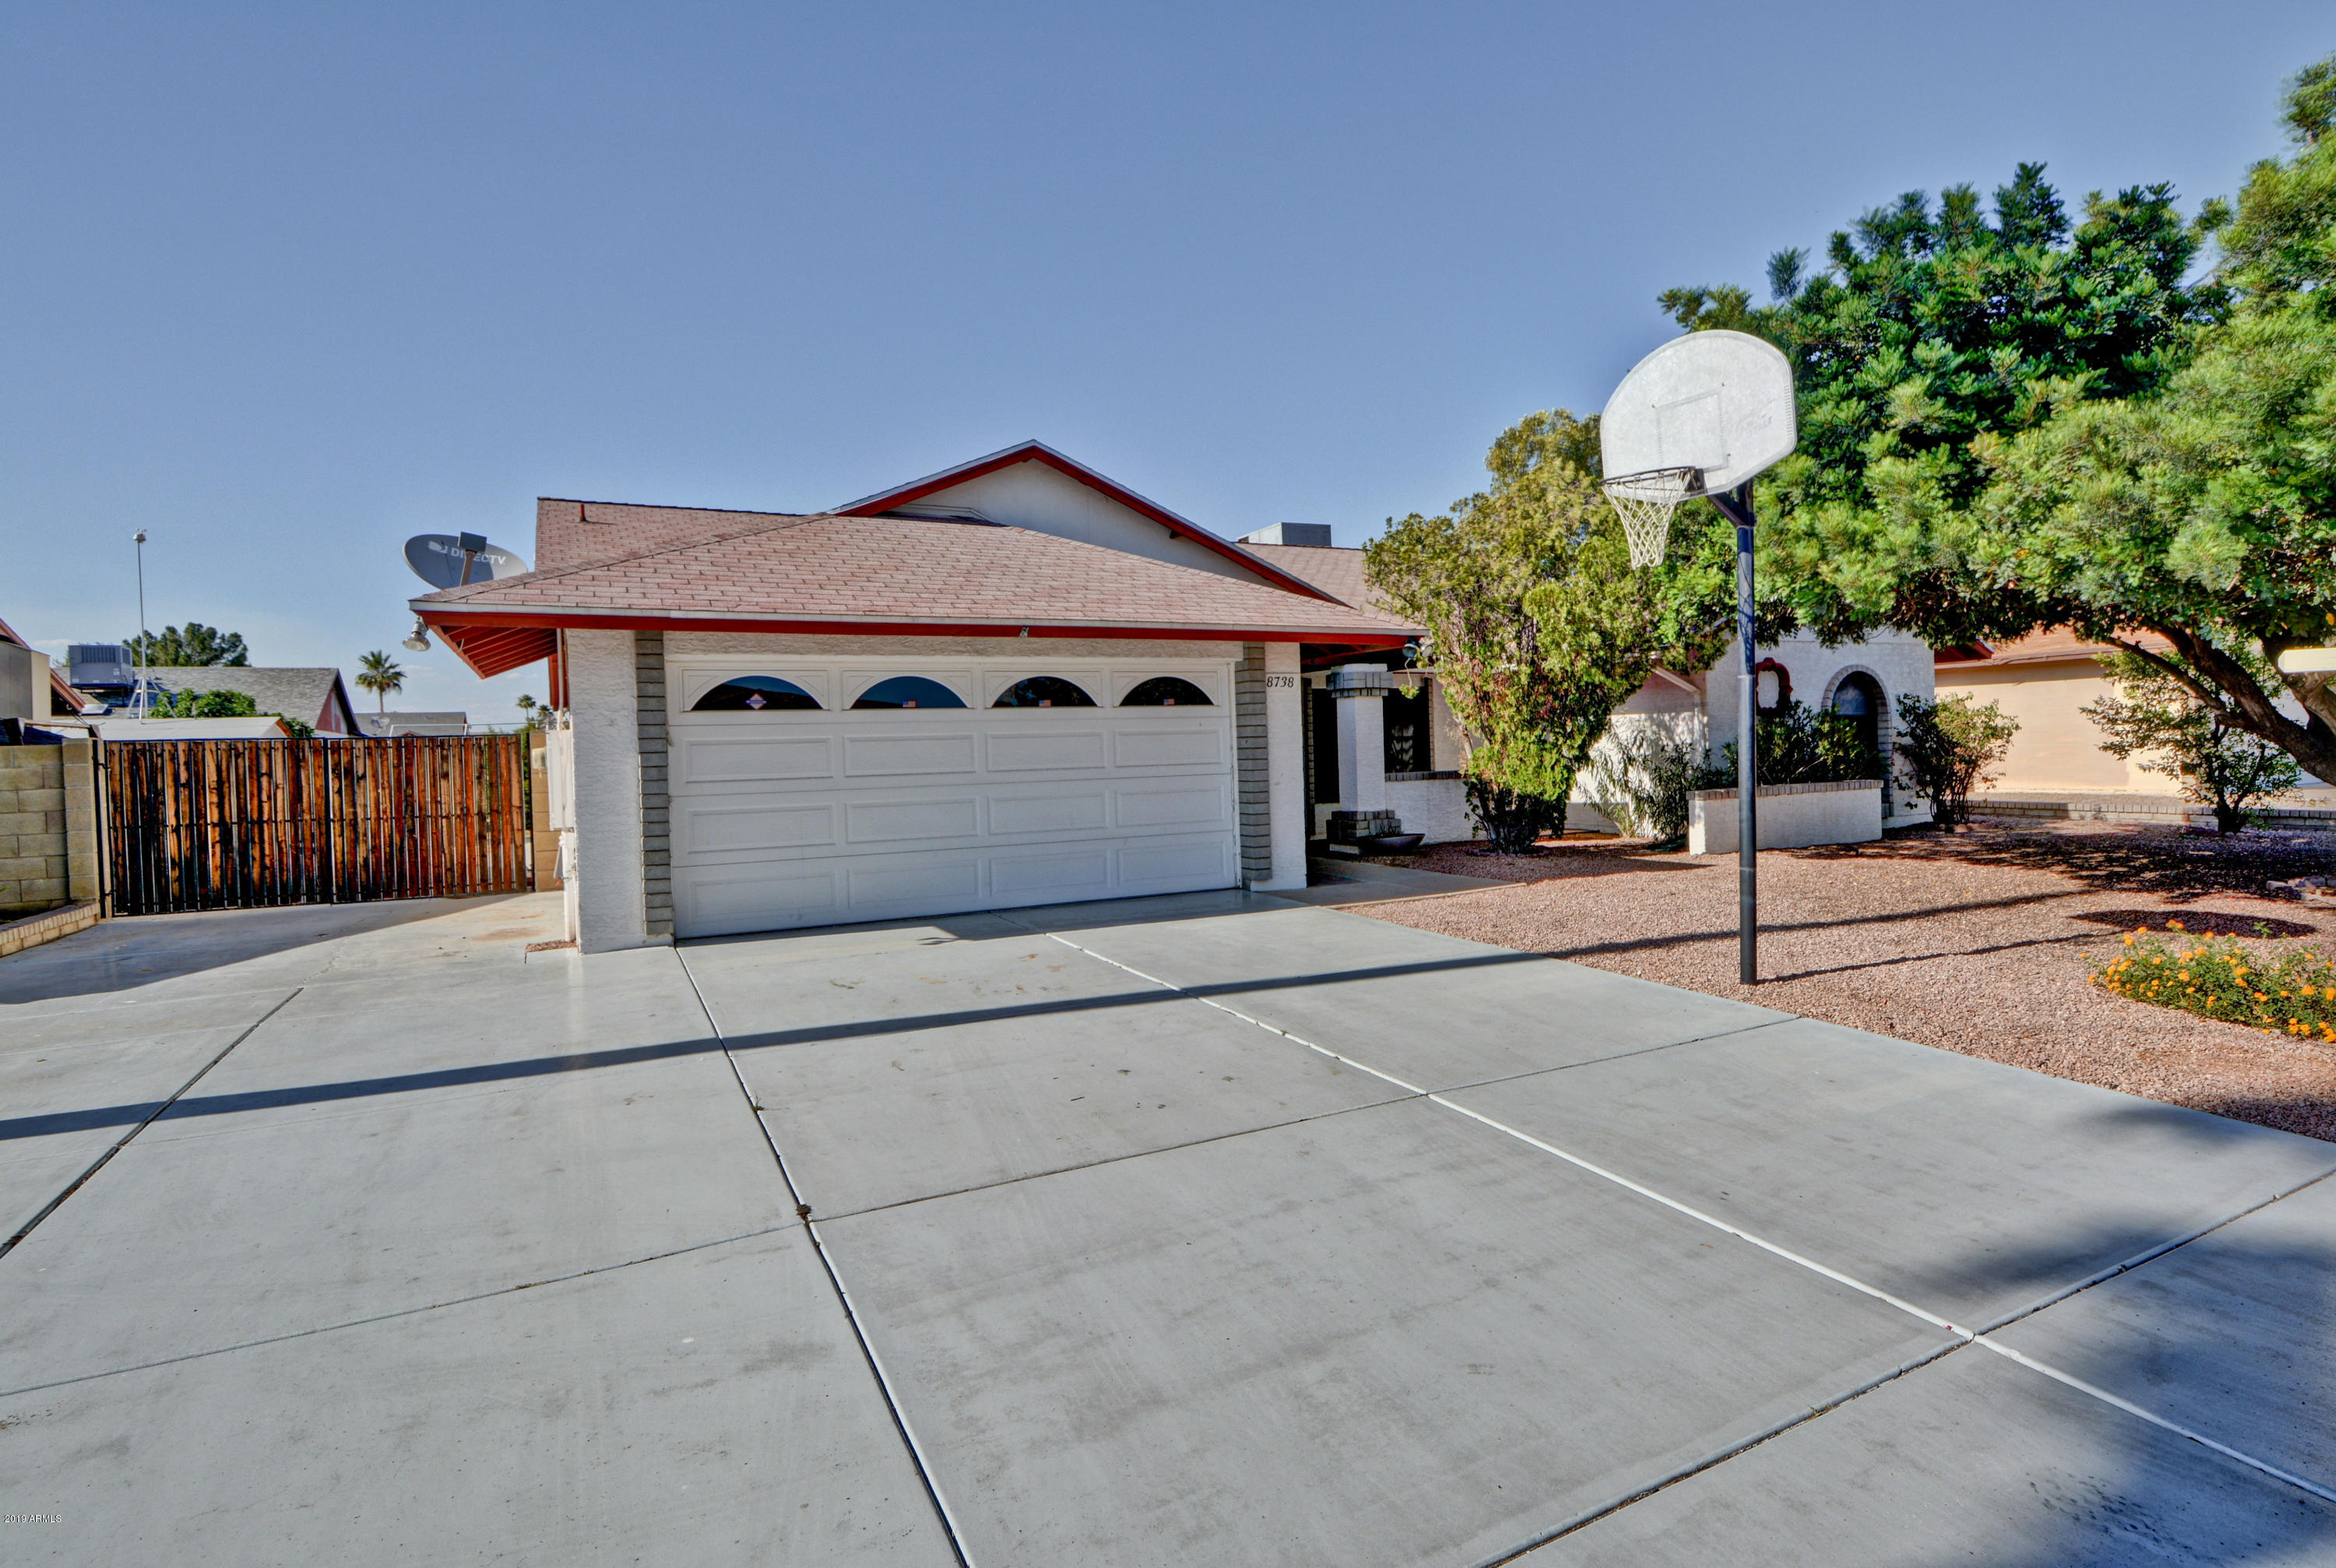 Photo of 8738 W DIANA Avenue, Peoria, AZ 85345